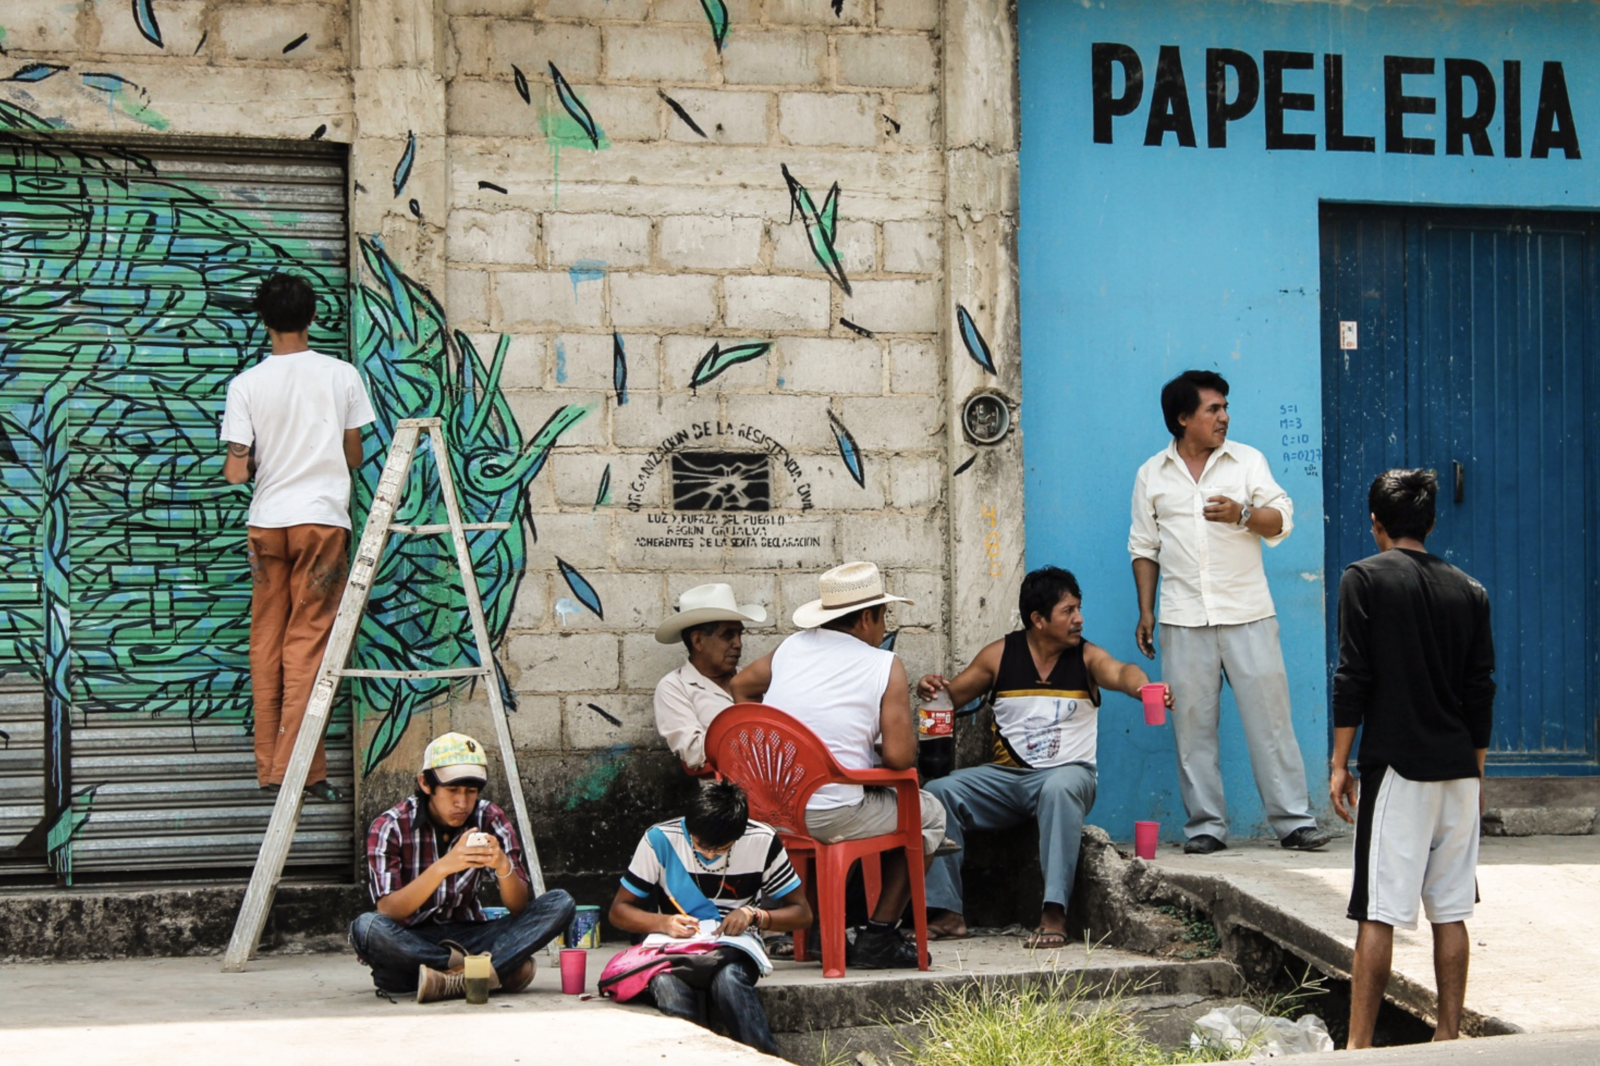 A group of activists sitting in front of one of their houses, while street-artist Crisa paints a mural. The seal of Luz y Fuerza del Pueblo appears on the wall behind them. - Comalapa, Chiapas. April 2014.